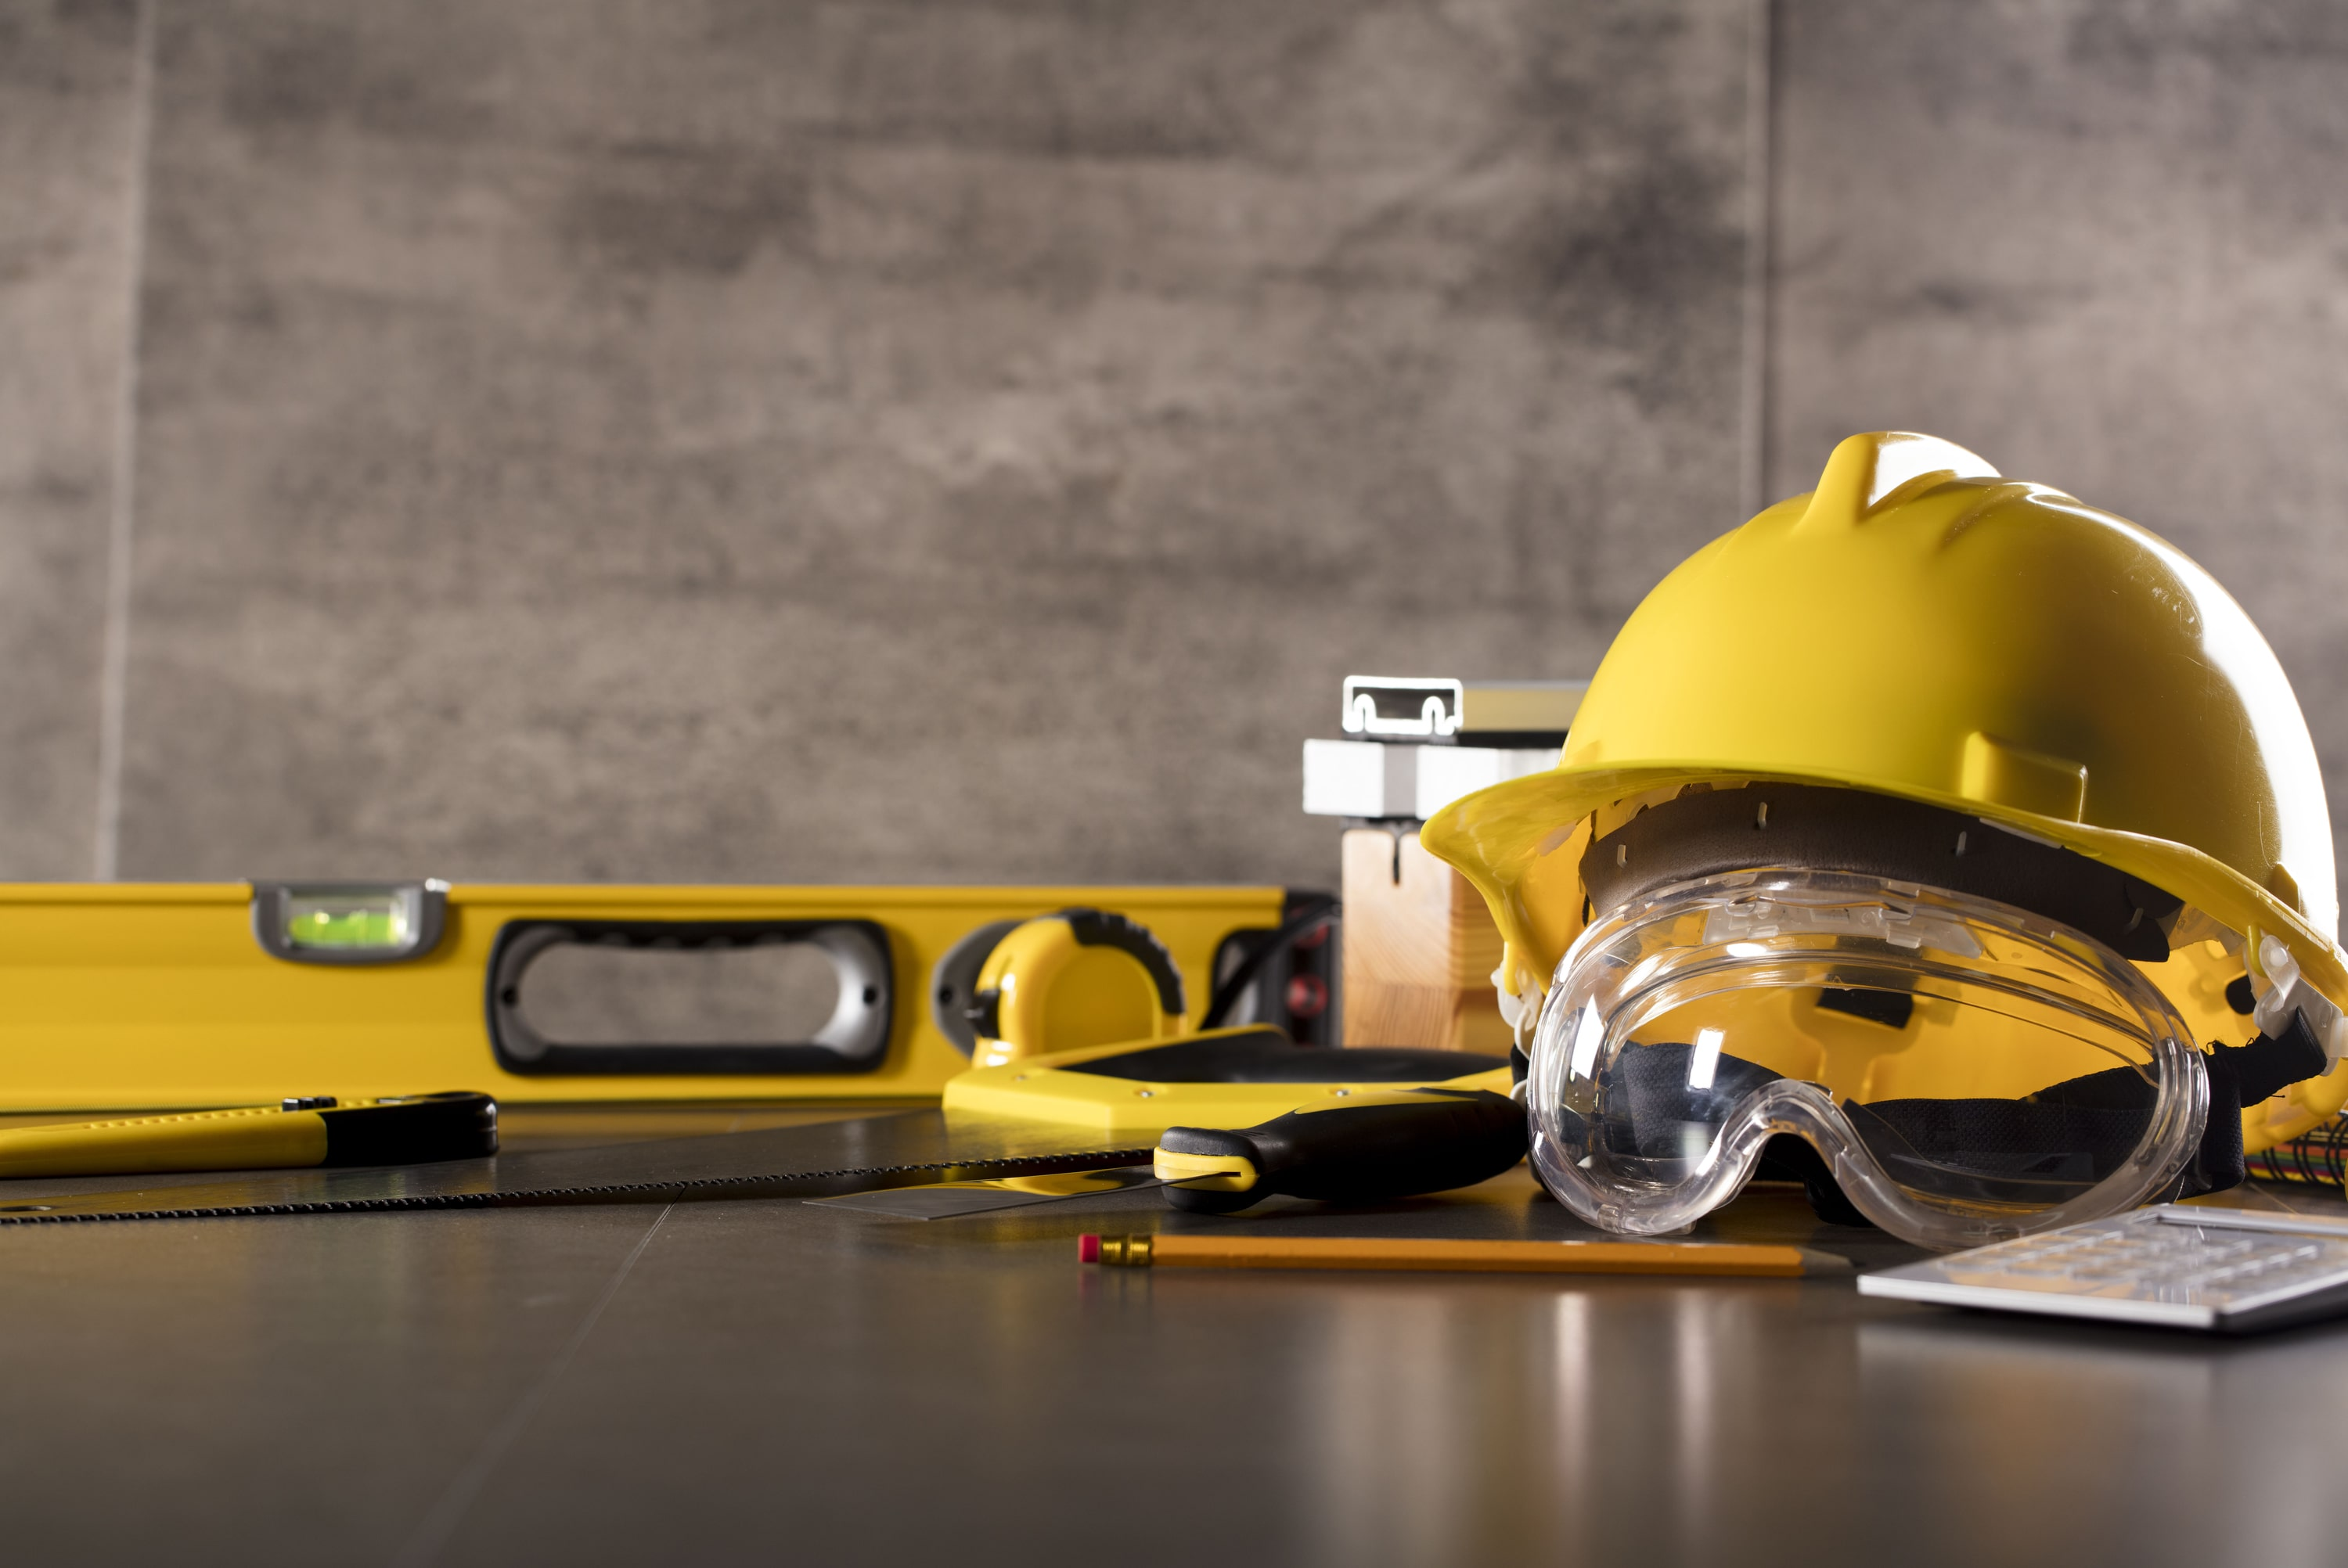 How To Find A Good Contractor For Home Improvement Repairs